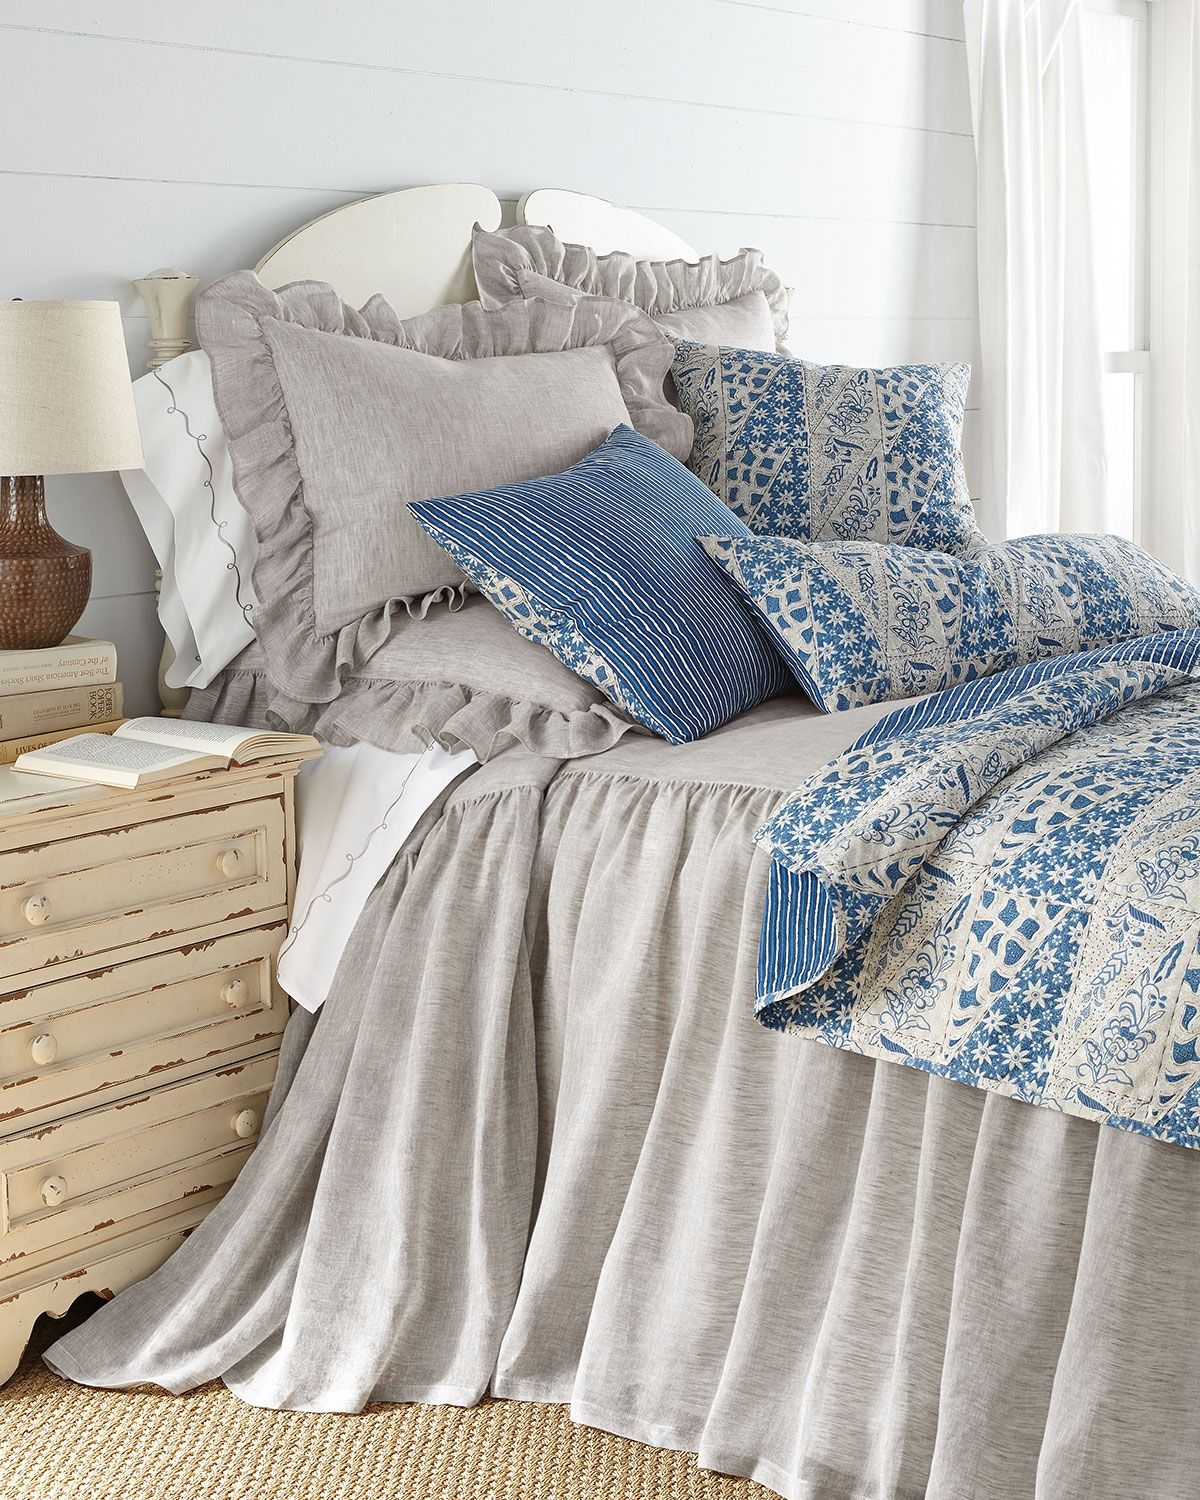 Queen Savannah Skirted Coverlet 60 Quot X 80 Quot With 30 Quot Drop